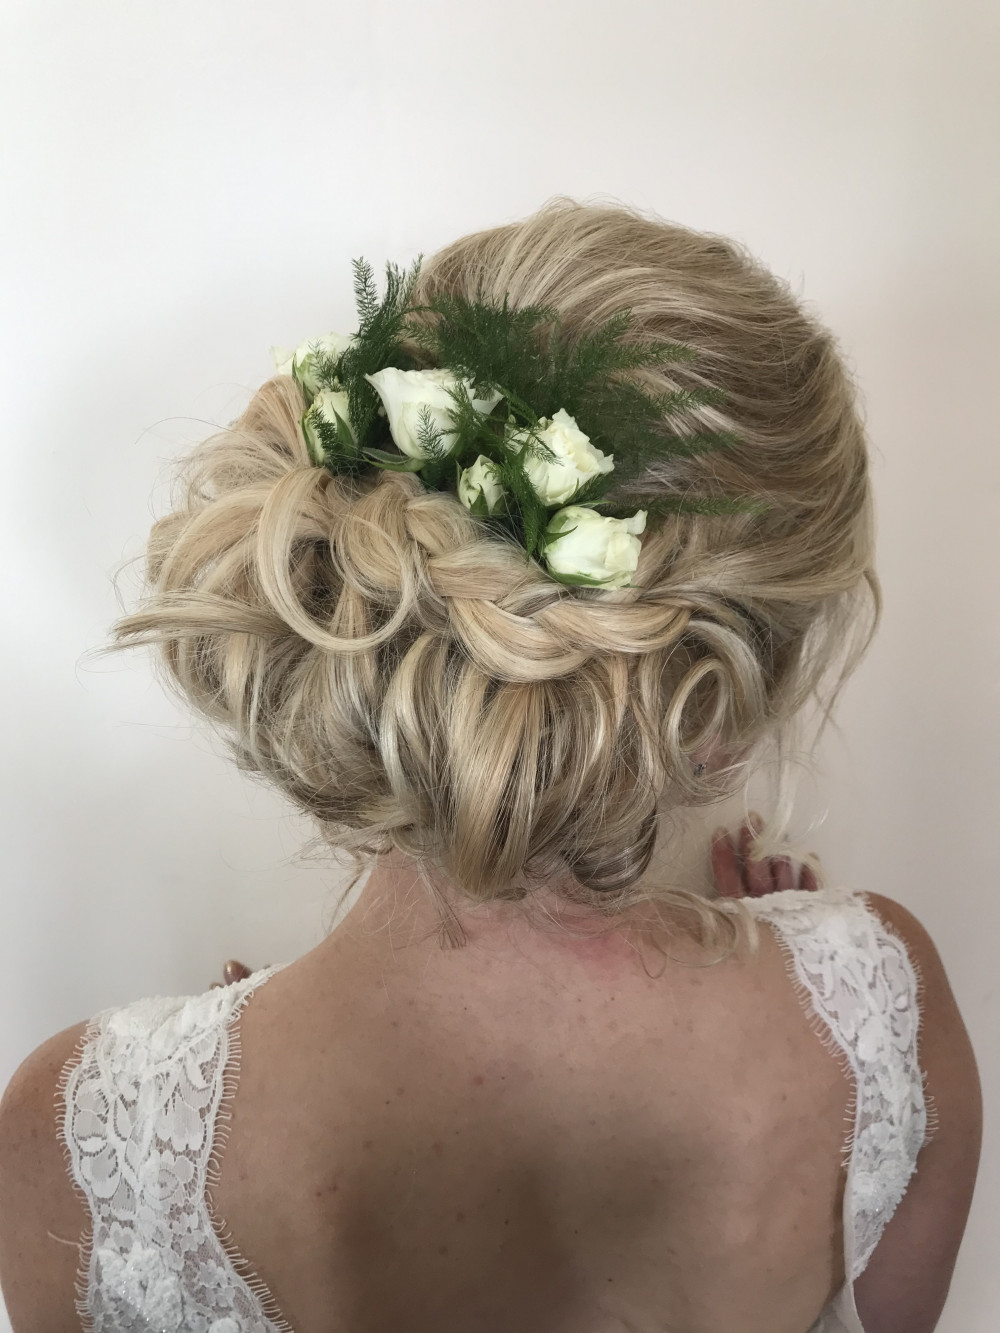 Beautiful tousled elegant updo with plait and flowers 